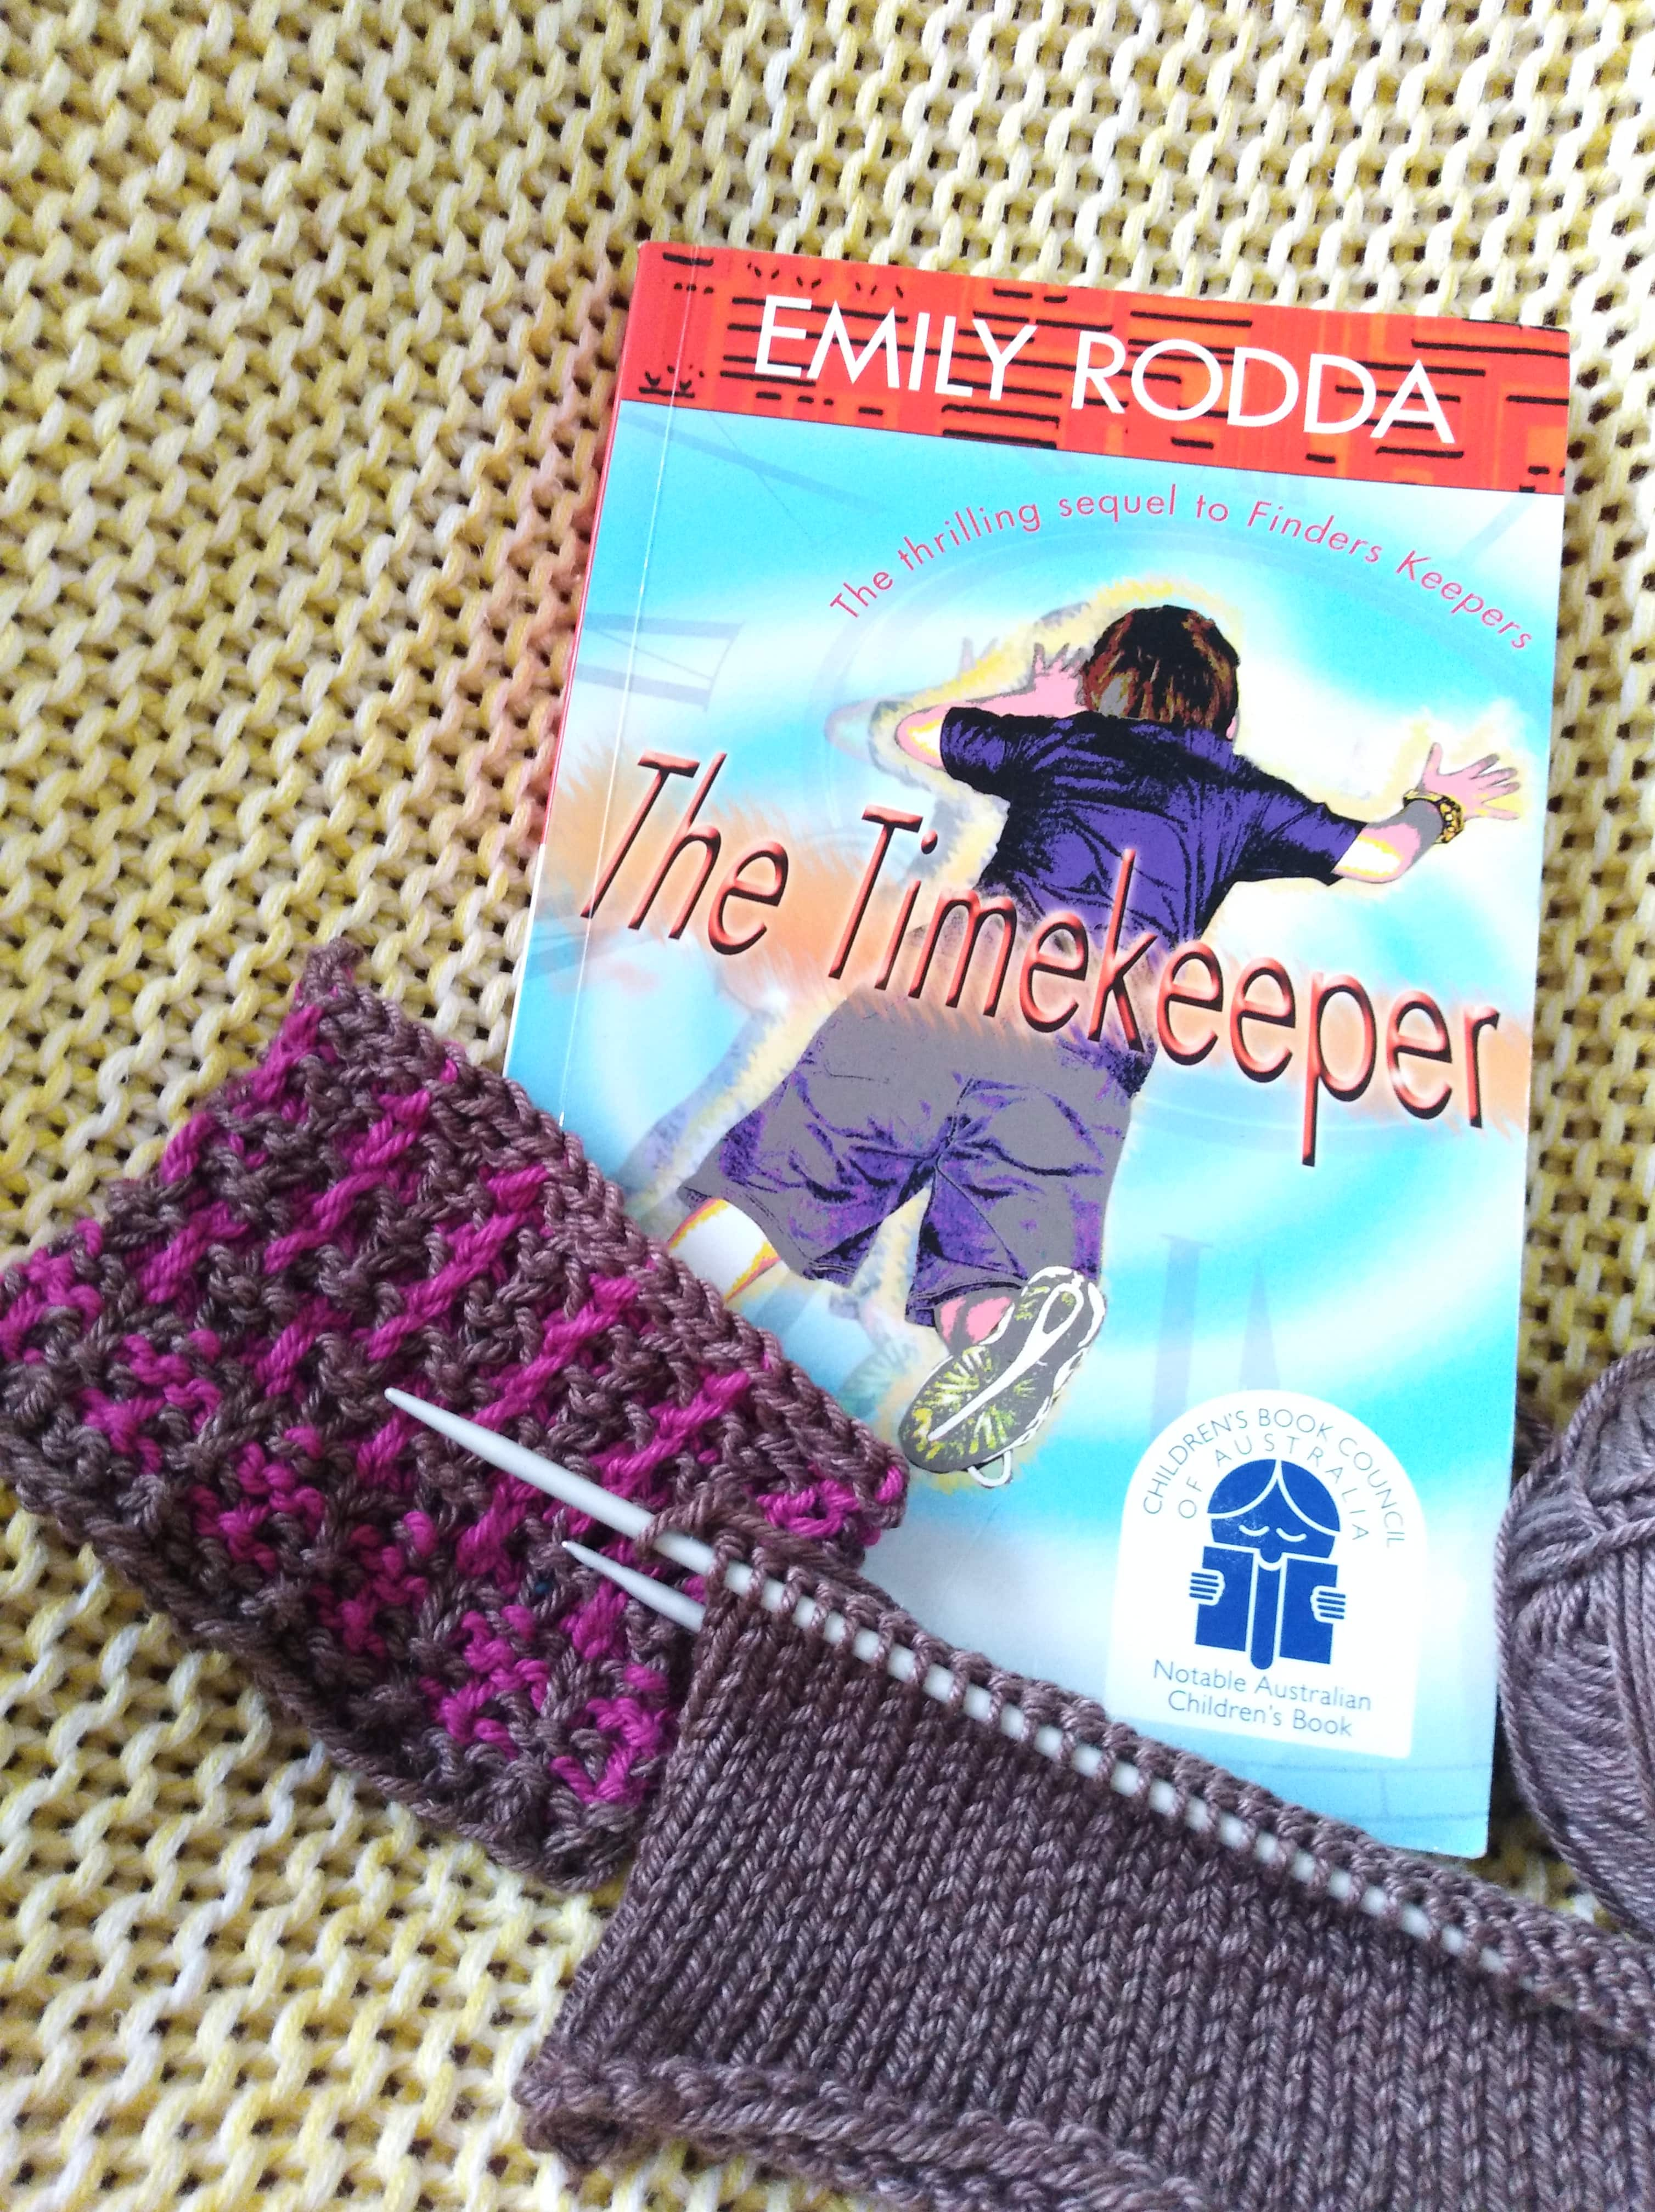 What I'm reading (The TimeKeeper by Emily Rodda) and knitting at the moment